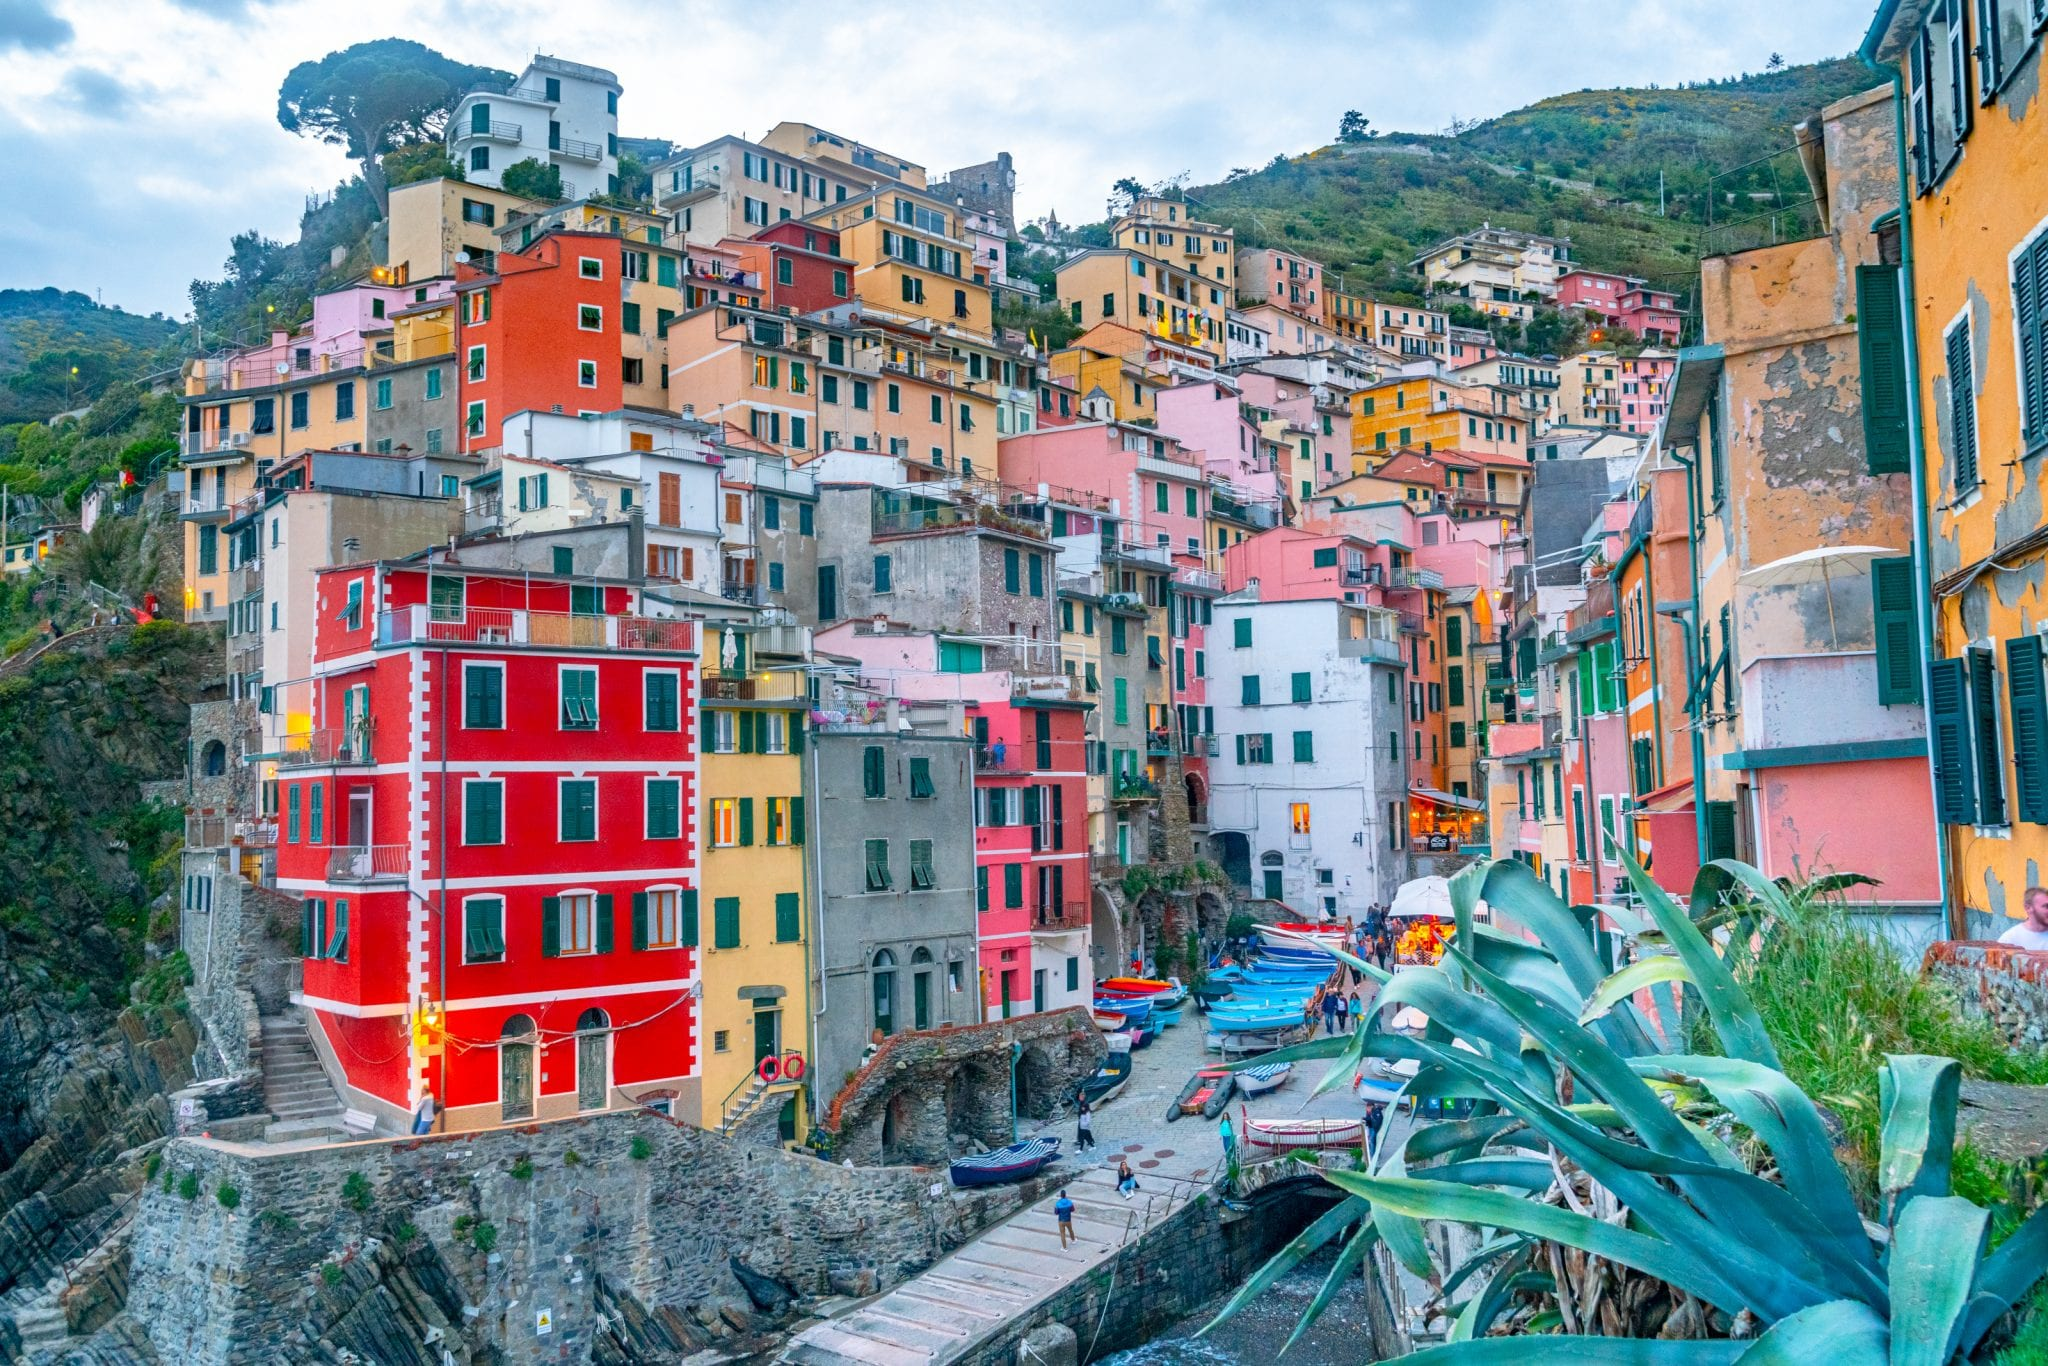 Riomaggiore at sunset from viewpoint above the town, Cinque Terre: visiting here if at all possible is definitely among our best travel tips for Italy!